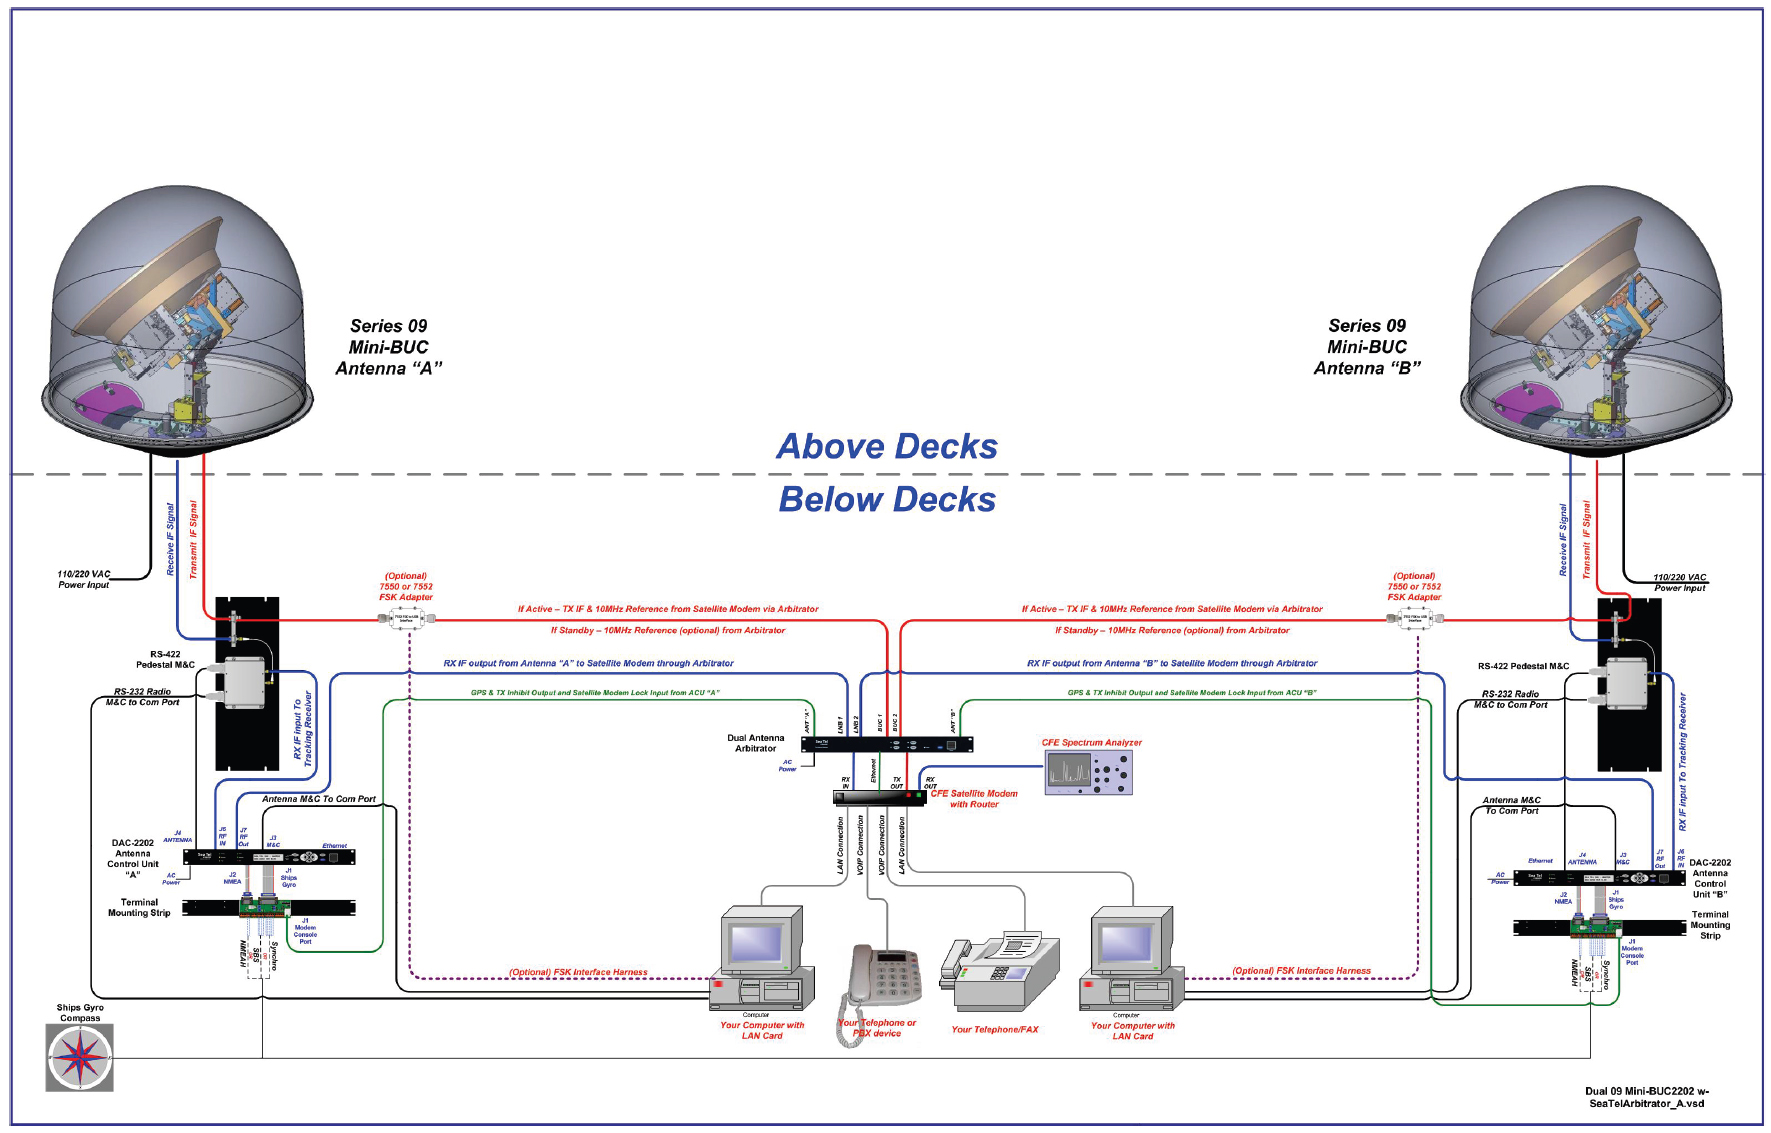 Watch in addition RVTT SecondPowerInlet as well Engine control besides Generac Automatic Transfer Switch Wiring Diagram together with Zx. on automatic switch wiring diagram